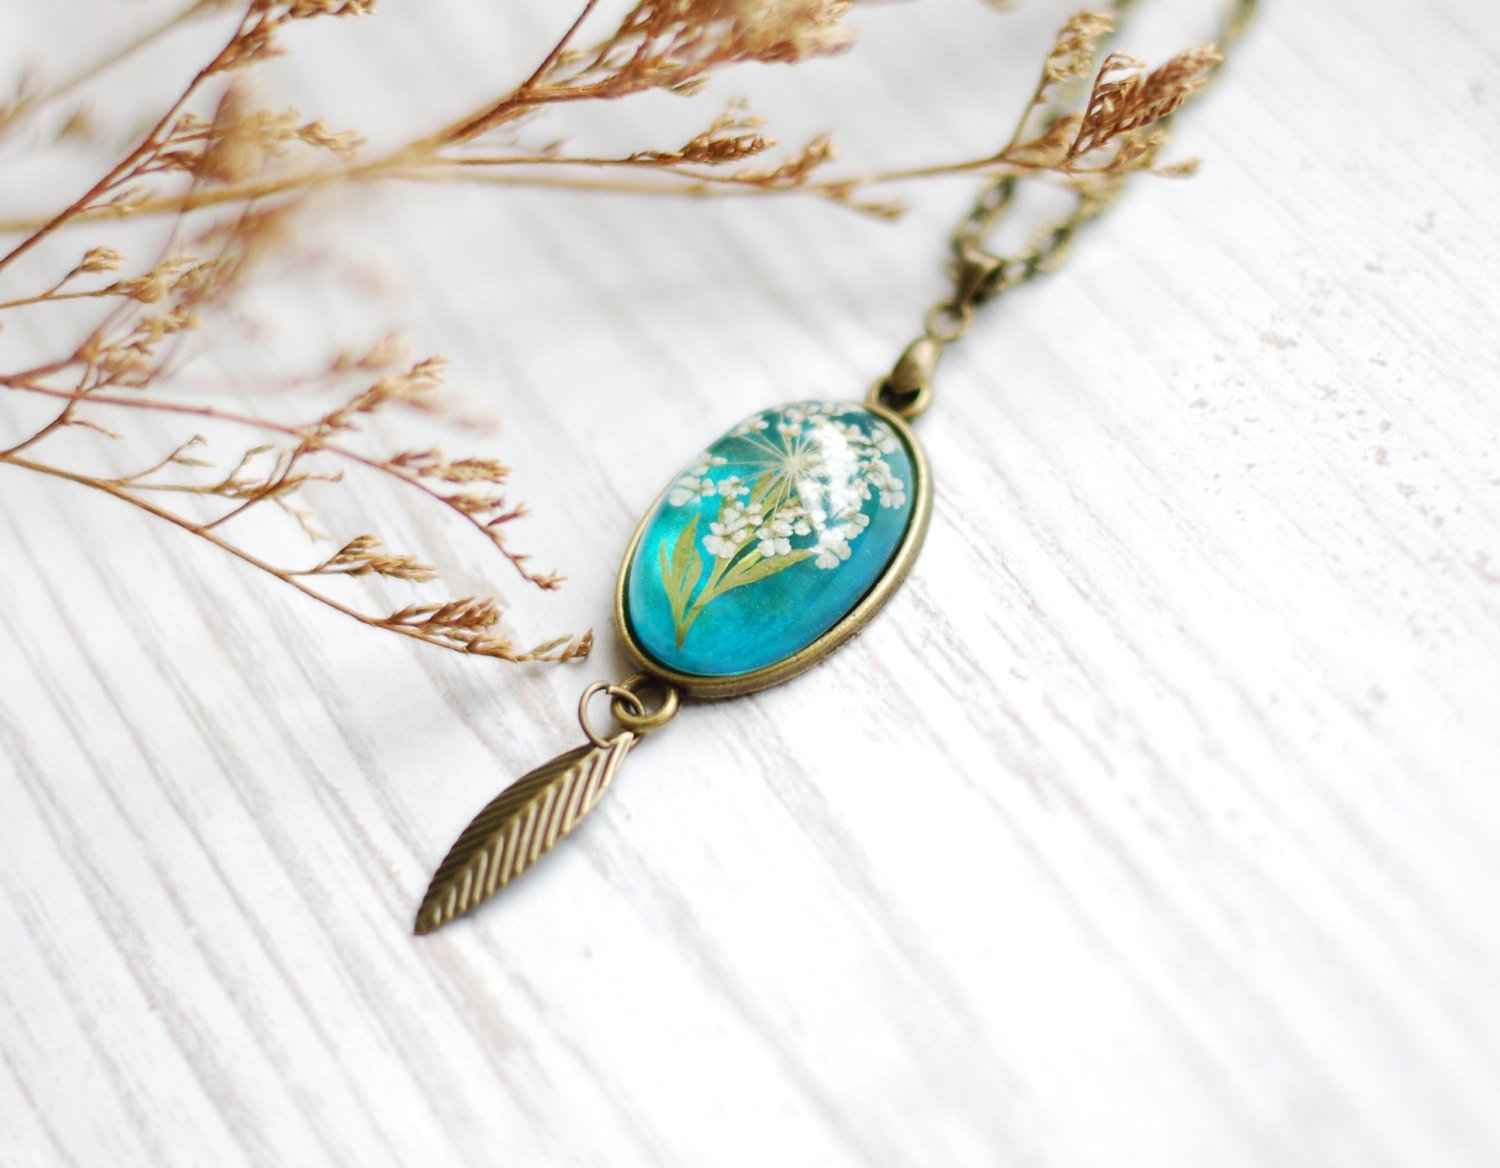 Turquoise Real Flower Necklace Eco Friendly Resin Peacock Blue Pressed Flower Leaf Jewelry Crystal Clear Dainty Gift for Her